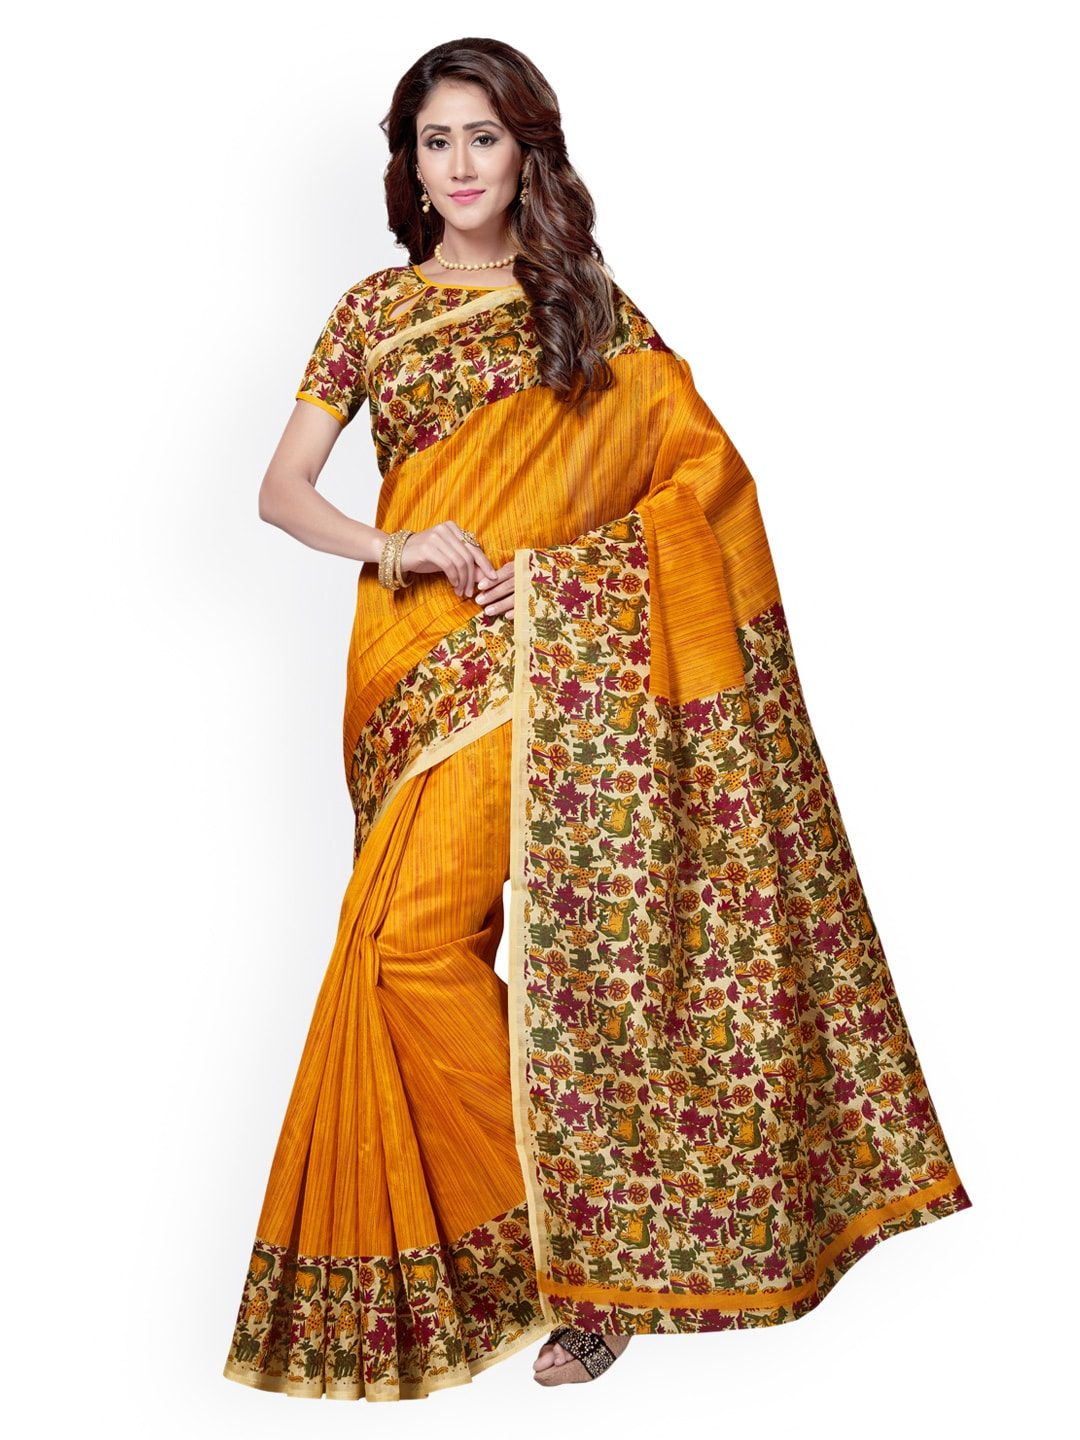 30ad21d94f2e2 Saree Swarg - Buy Saree Swarg online in India